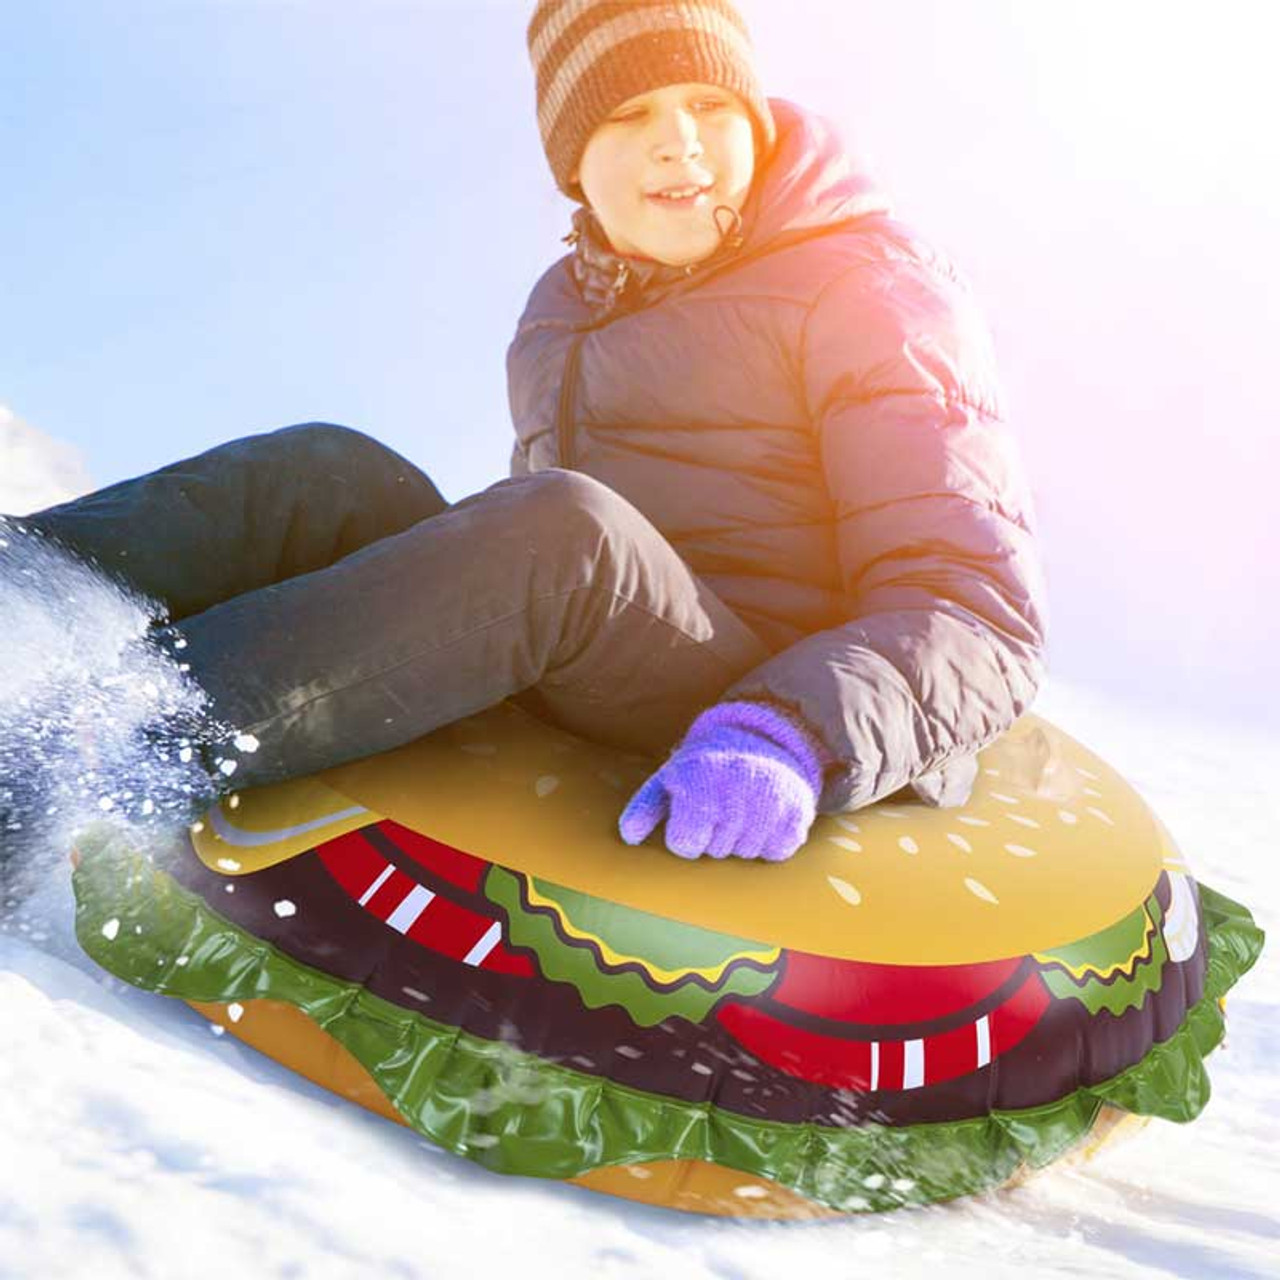 Giant Inflatable Cheeseburger Snow Tube